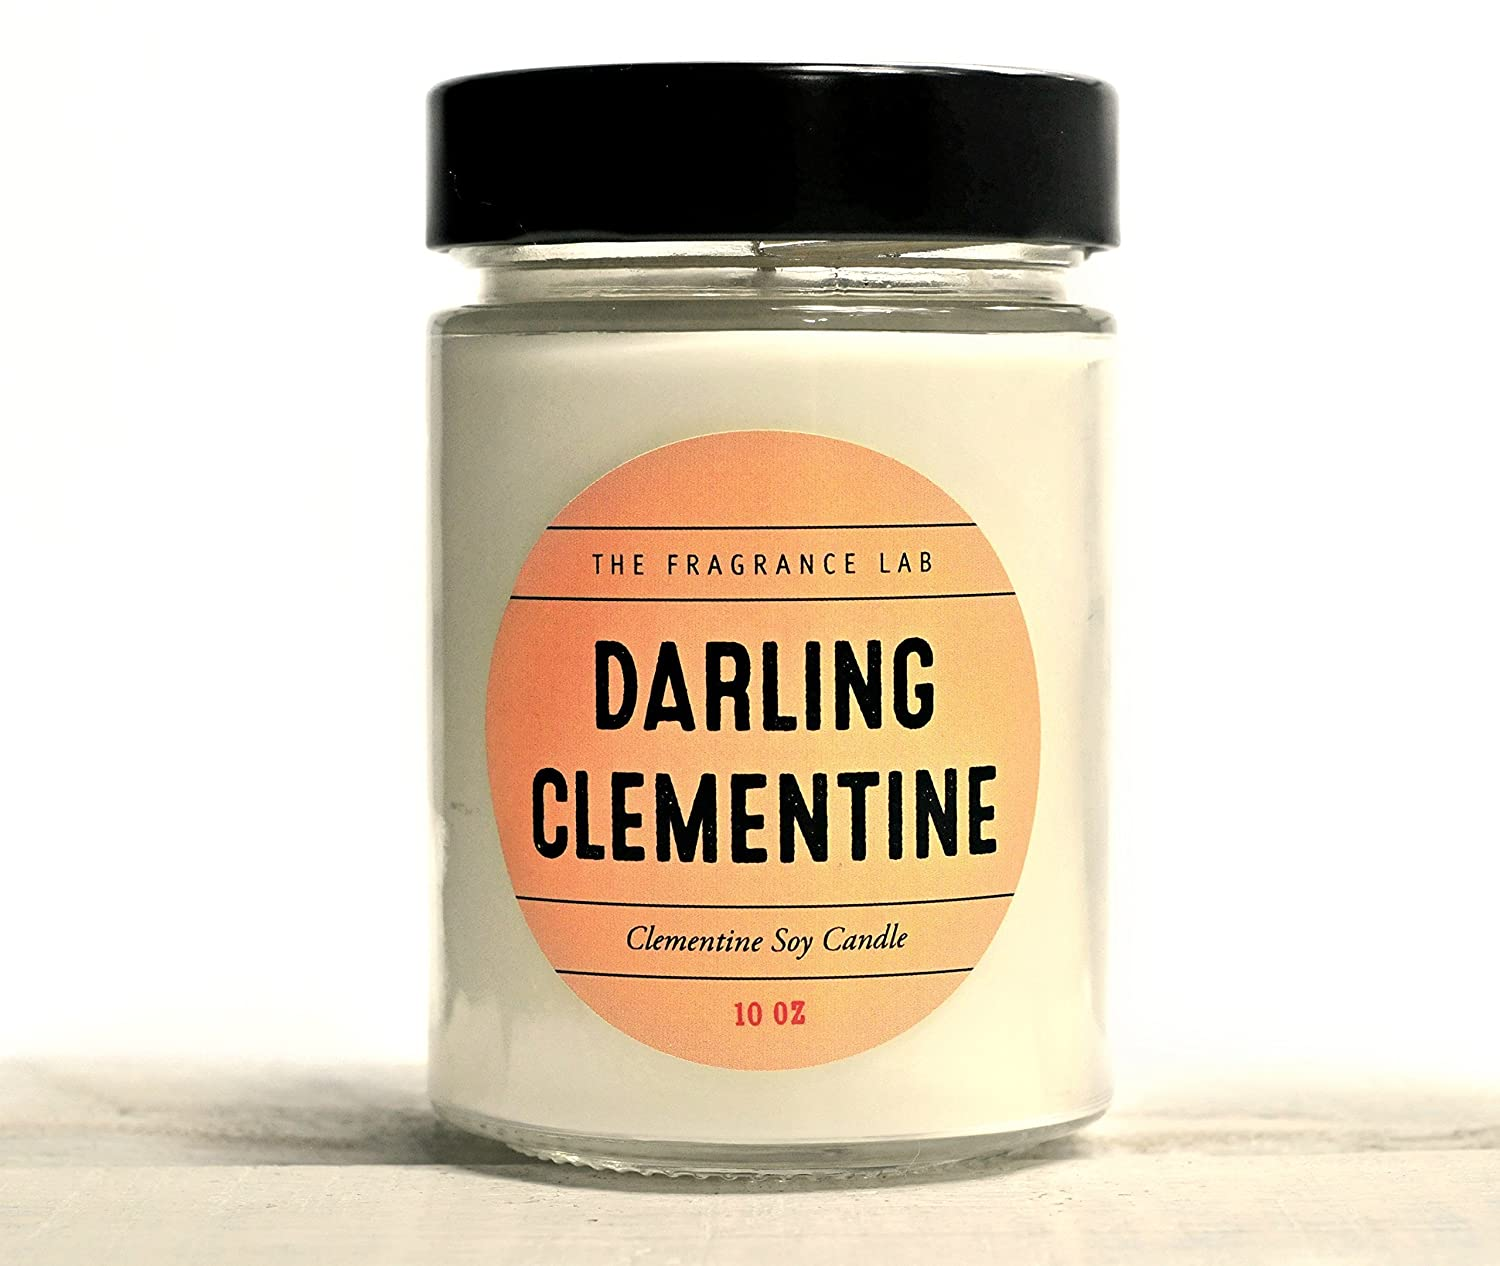 Luxury Soy Candle -Darling Clementine Clementine Scented Candle | The Fragrance Lab